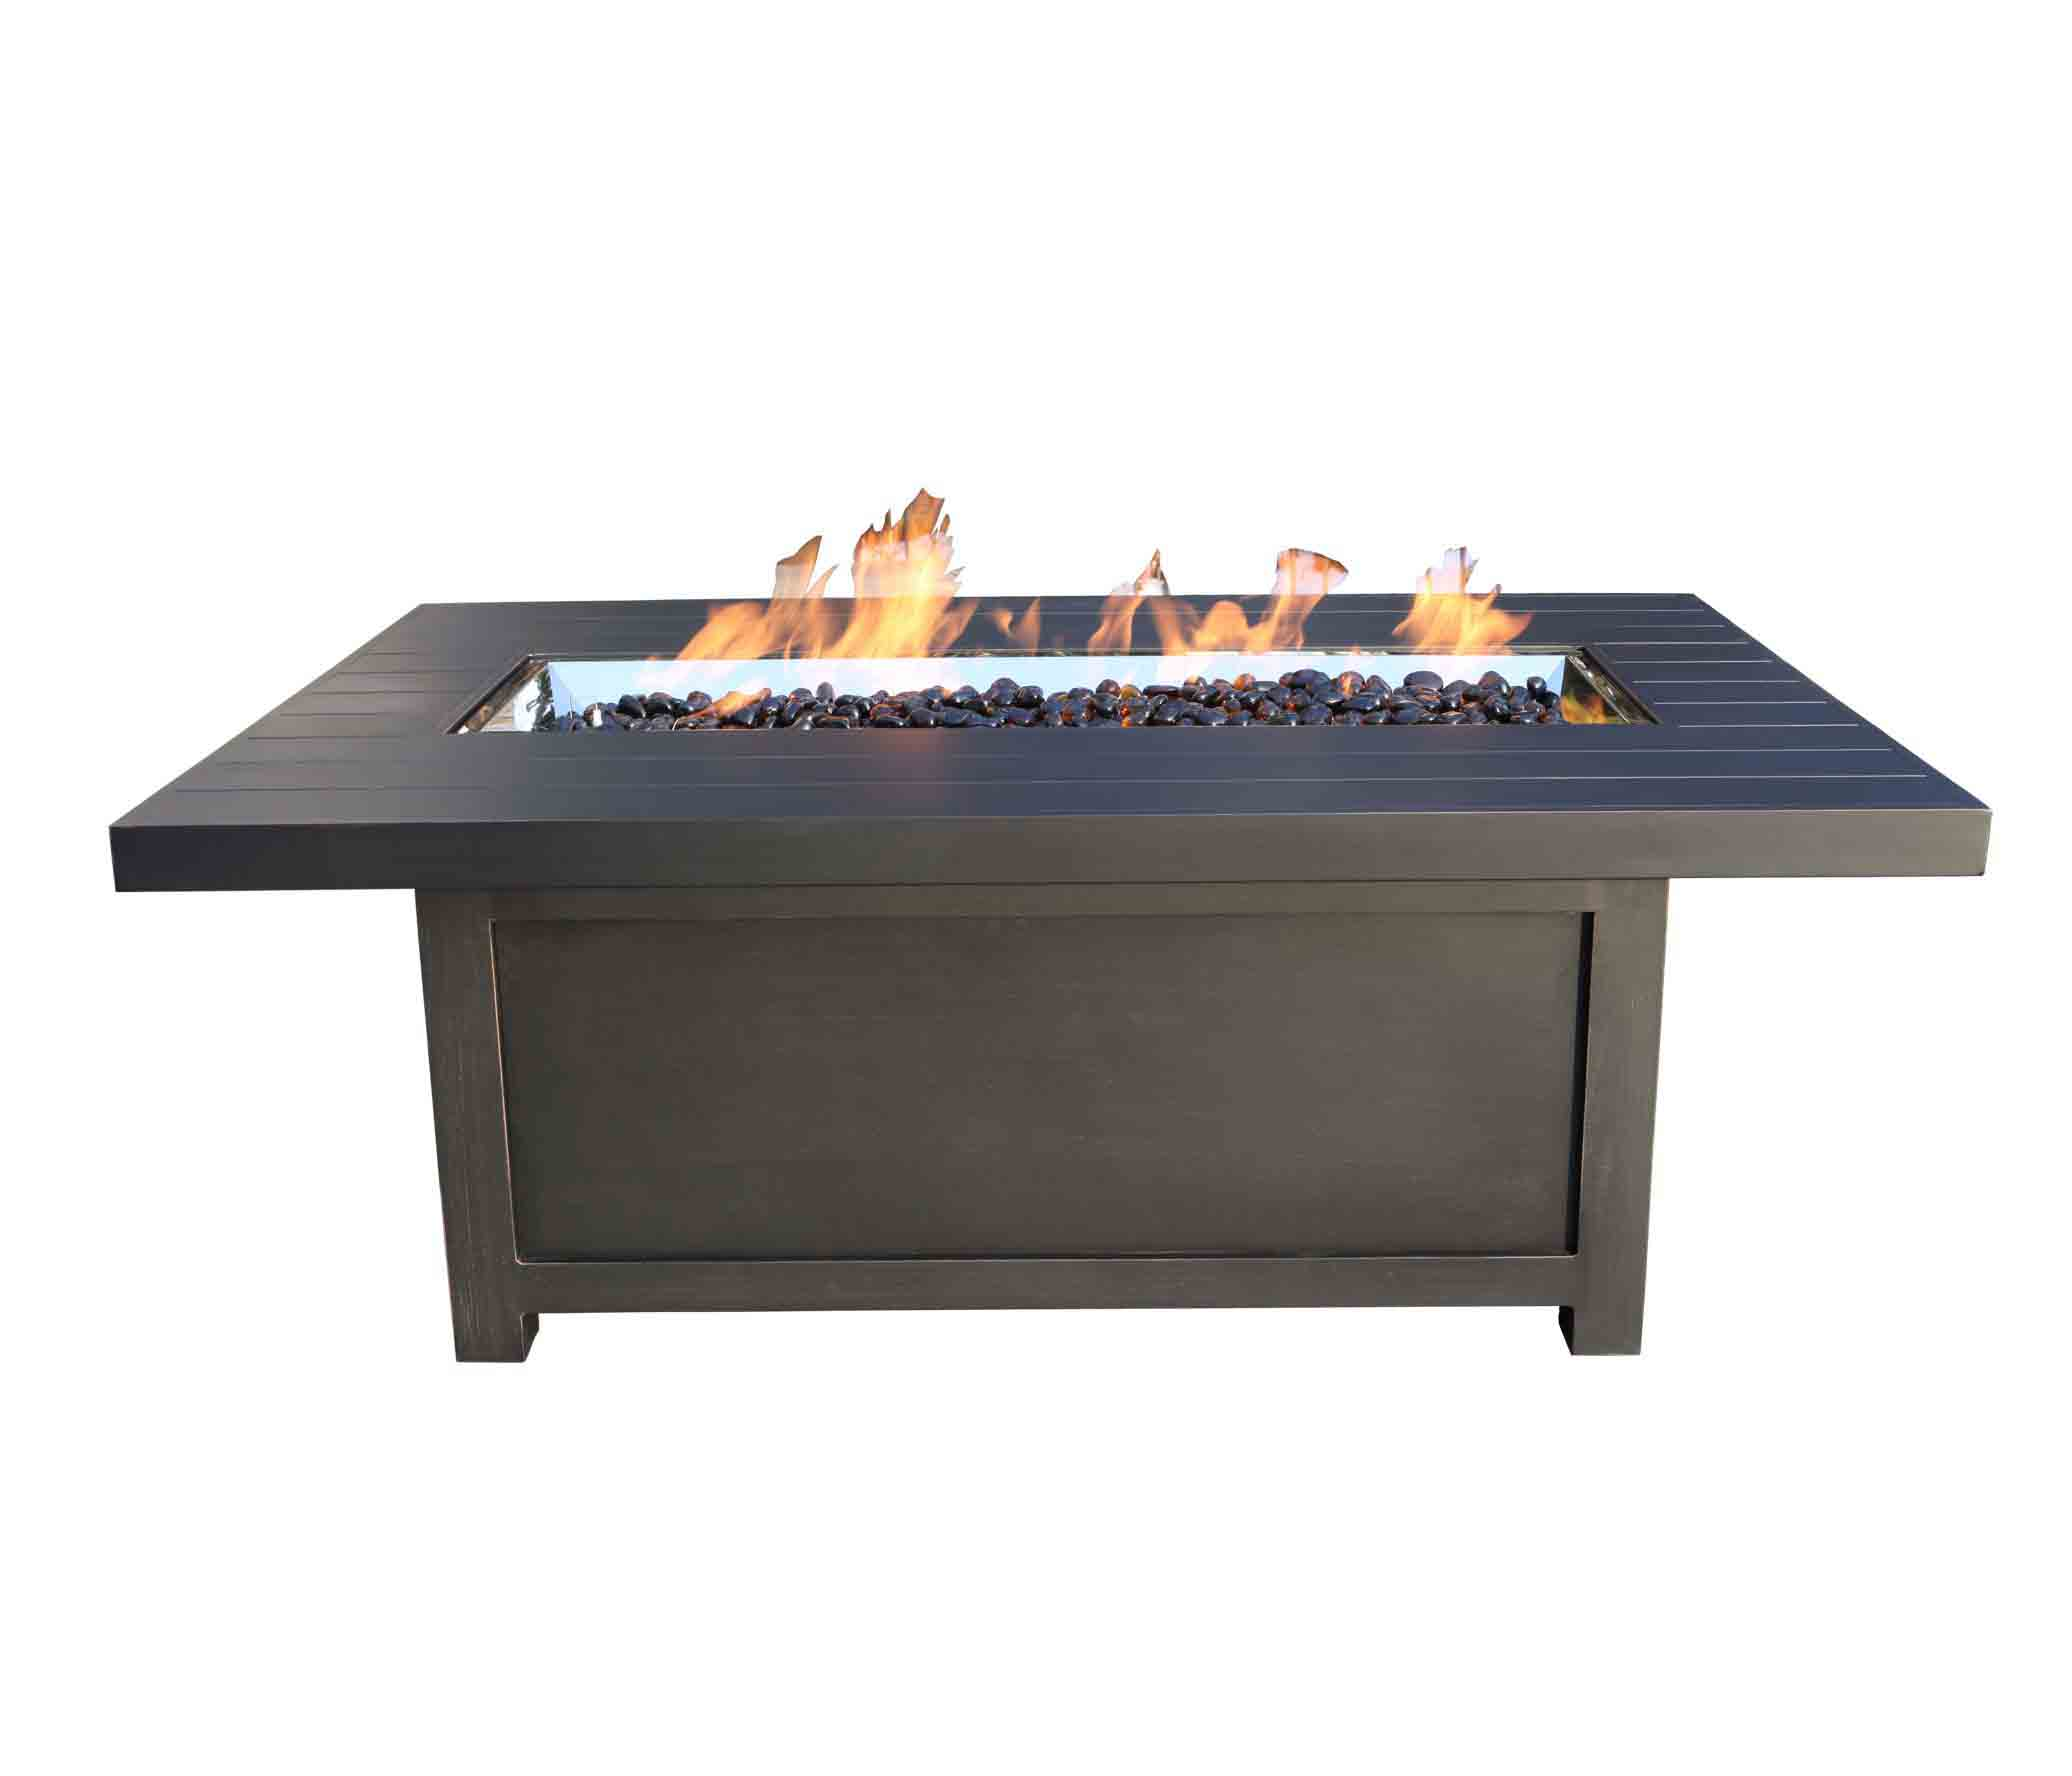 Outdoor Fire Pit Monaco 58 X 38 Bishop S Centre Bishop S Outdoor Living Patio Furniture Fire Pits Umbrellas